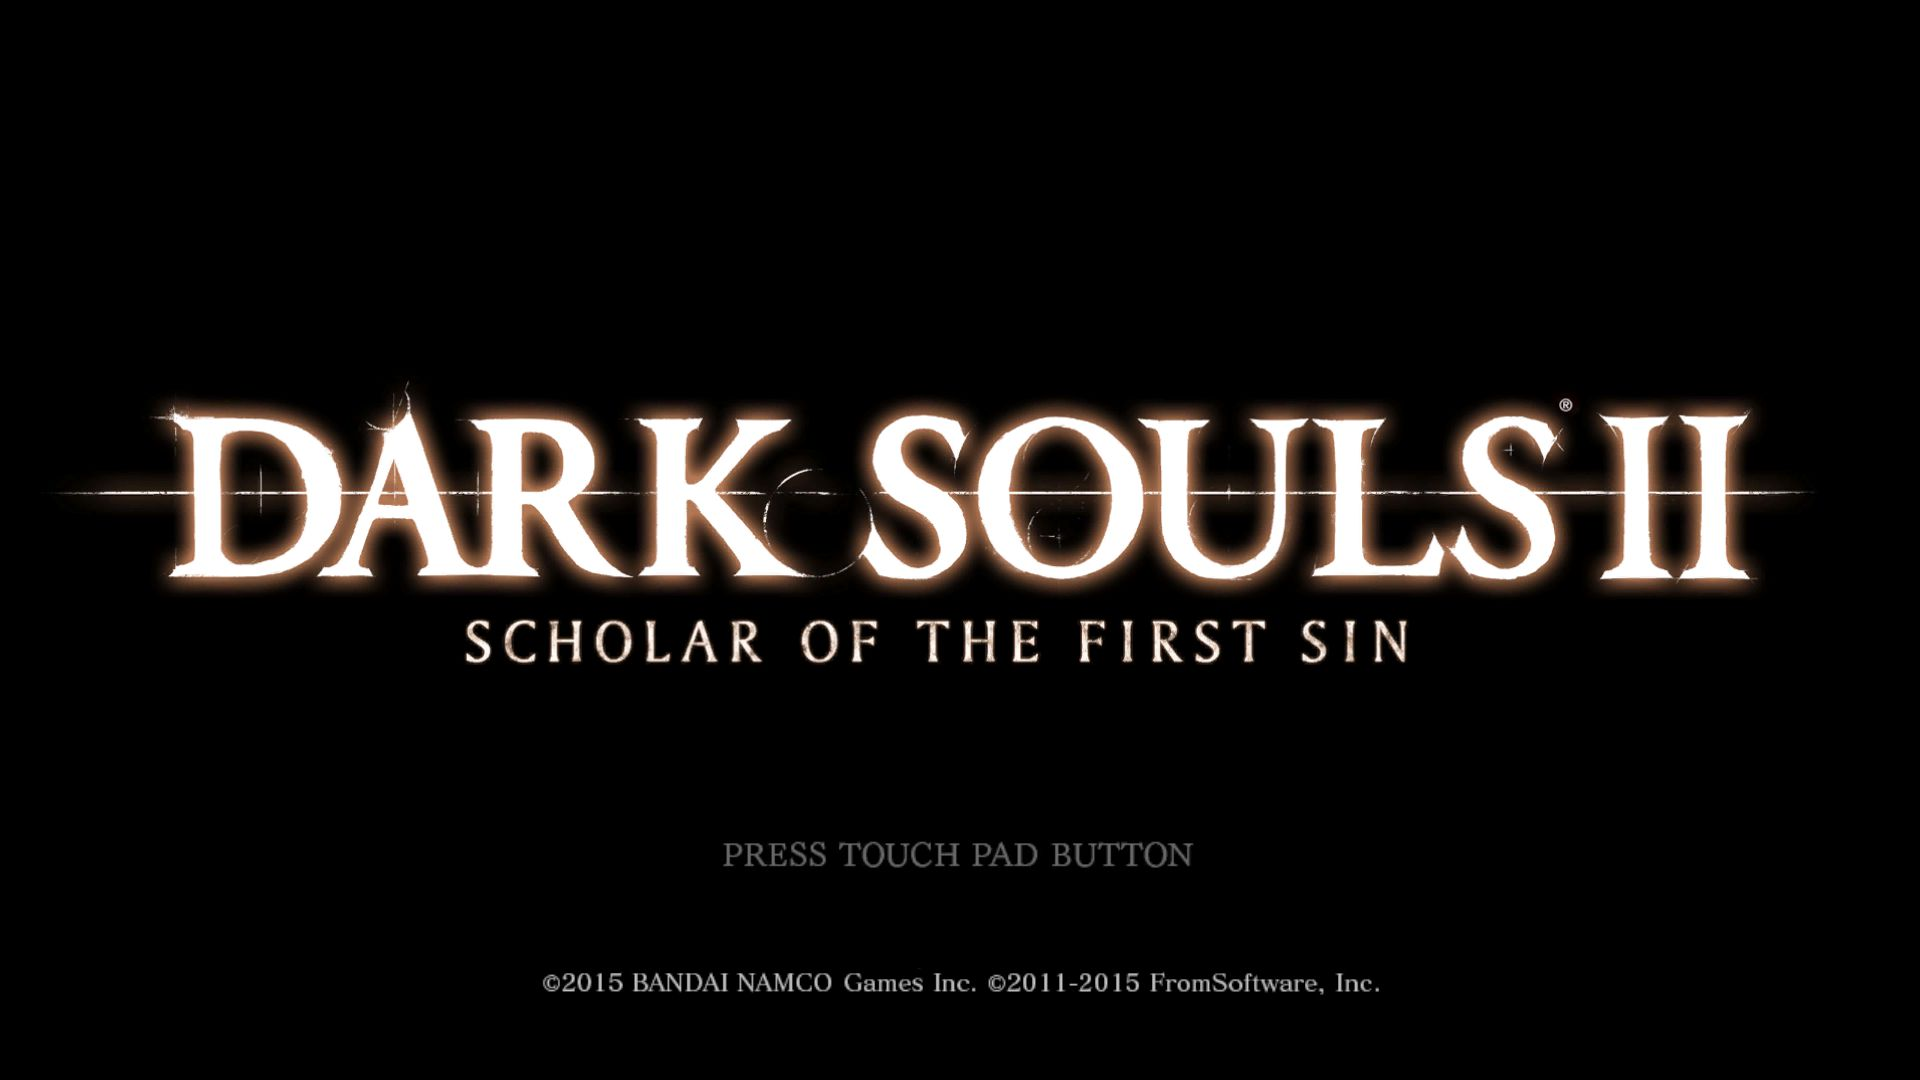 DARK SOULS Ⅱ SCHOLAR OF THE FIRST SIN Vol.4